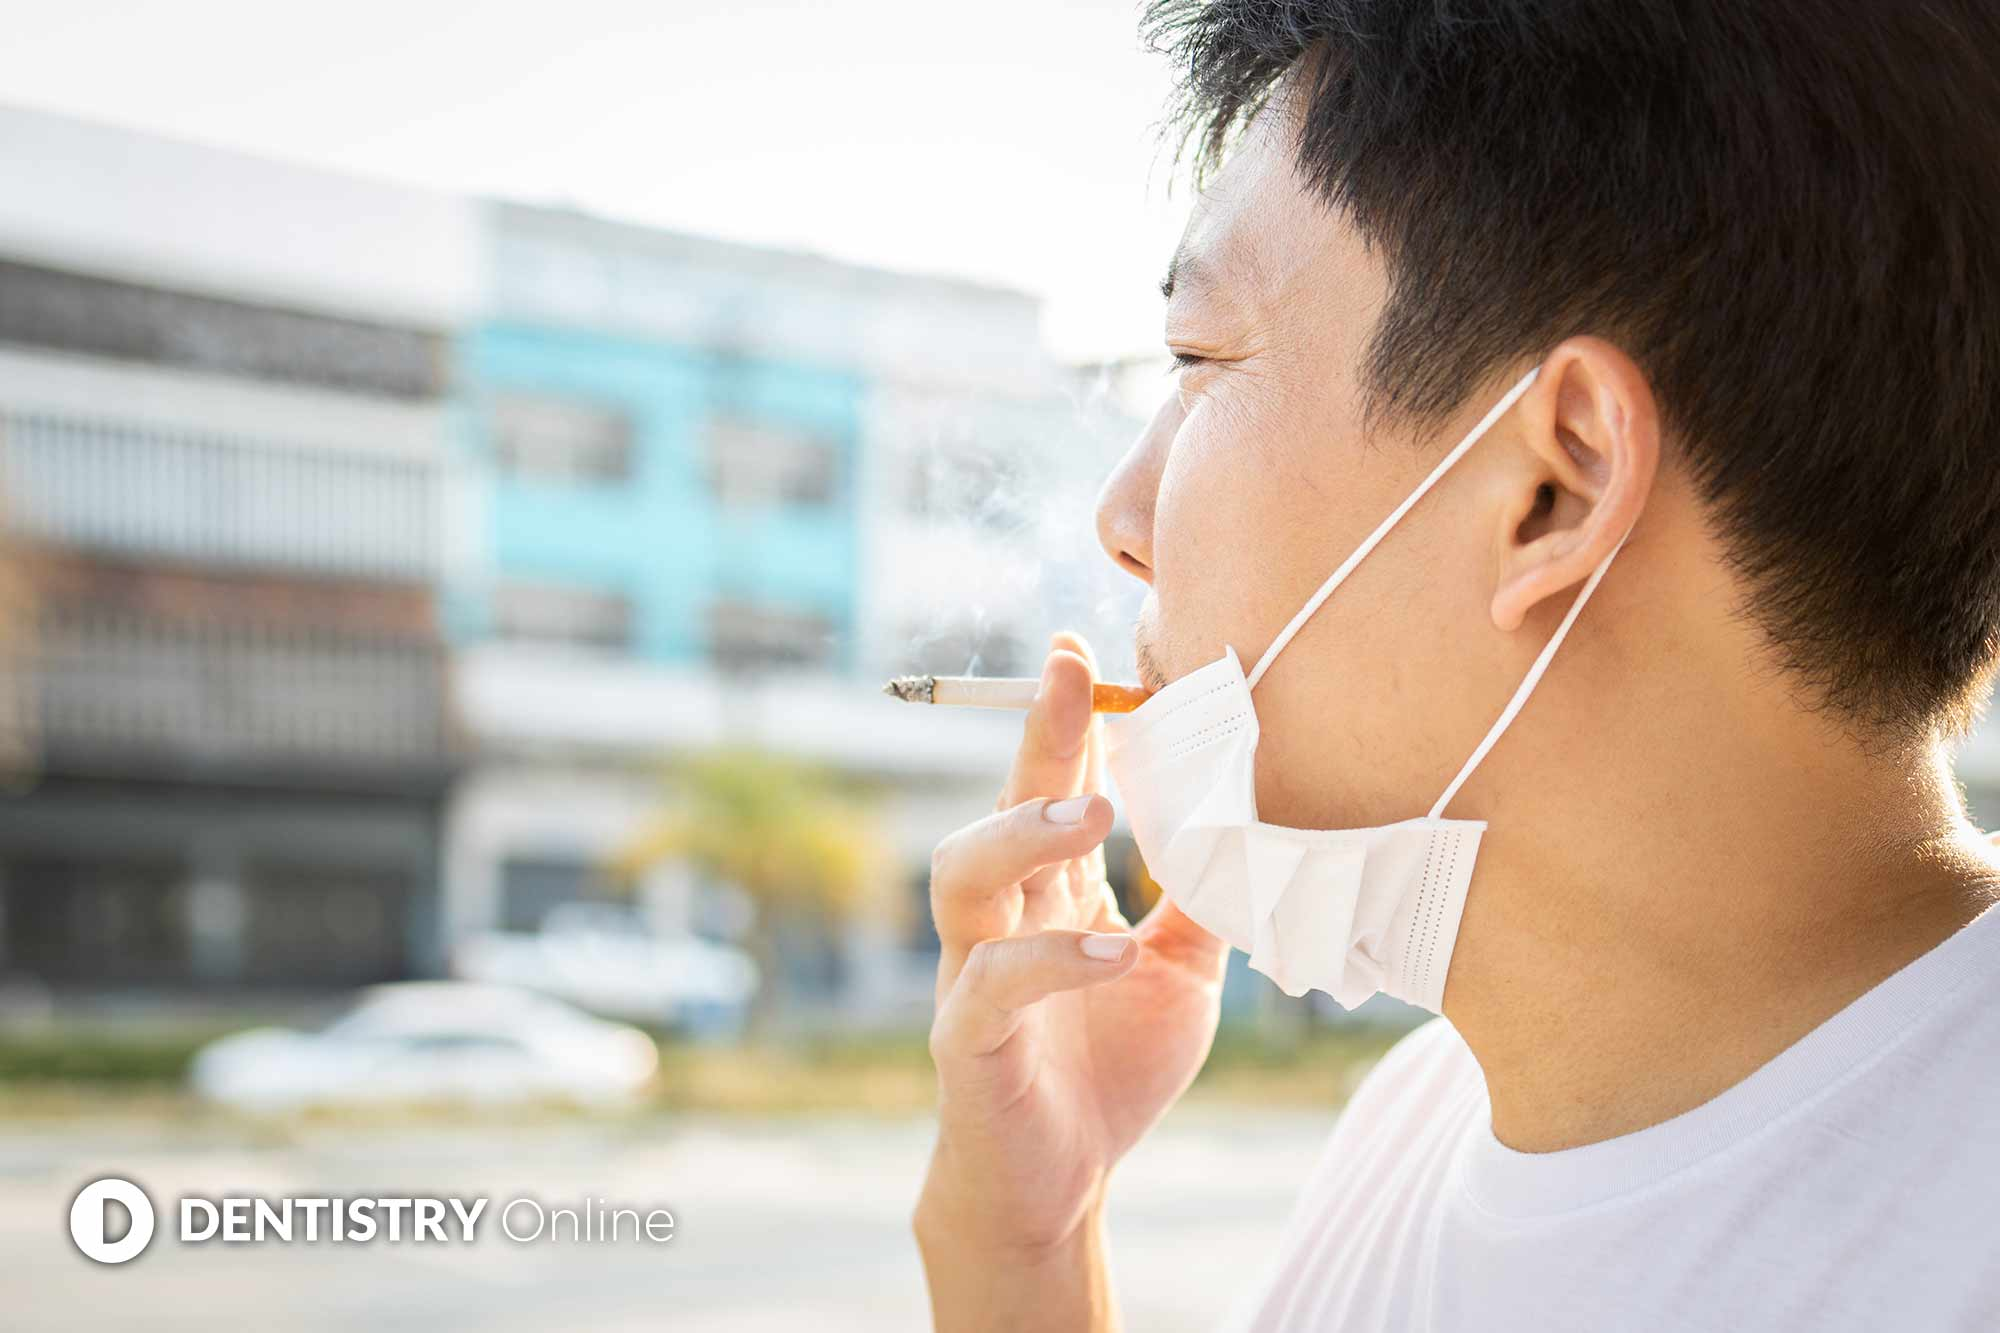 Smokers who test positive for COVID-19 are more than twice as likely to be hospitalised for the virus